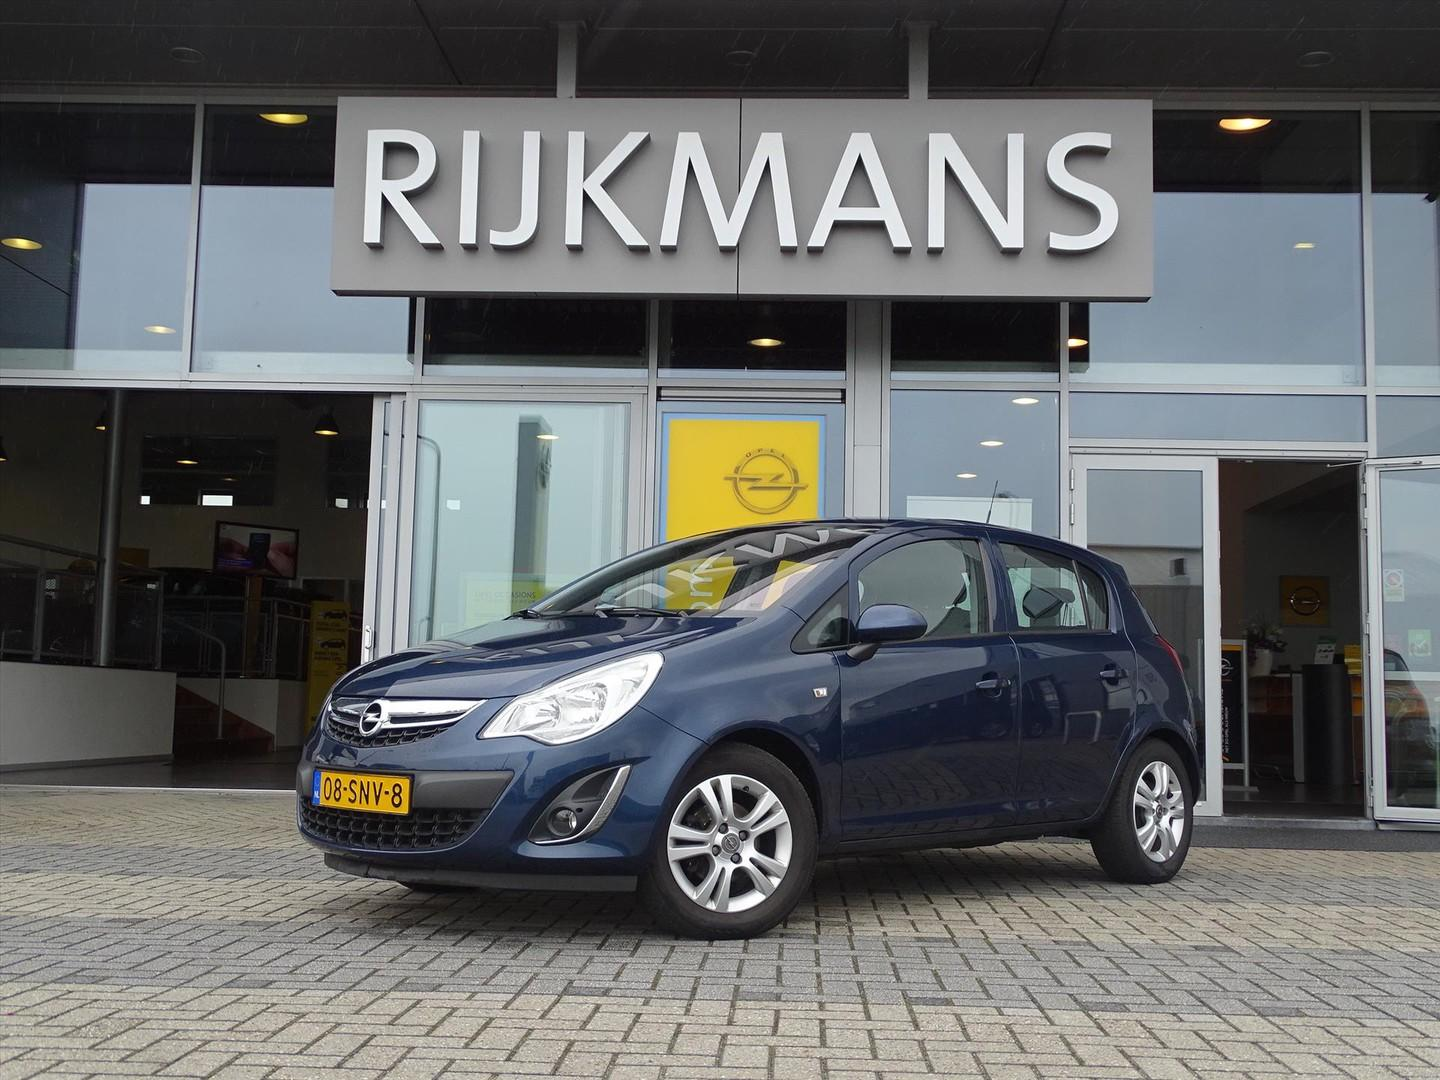 Opel Corsa Cosmo 1.2 85 pk - automaat - 5drs - climate - cruise - trekhaak